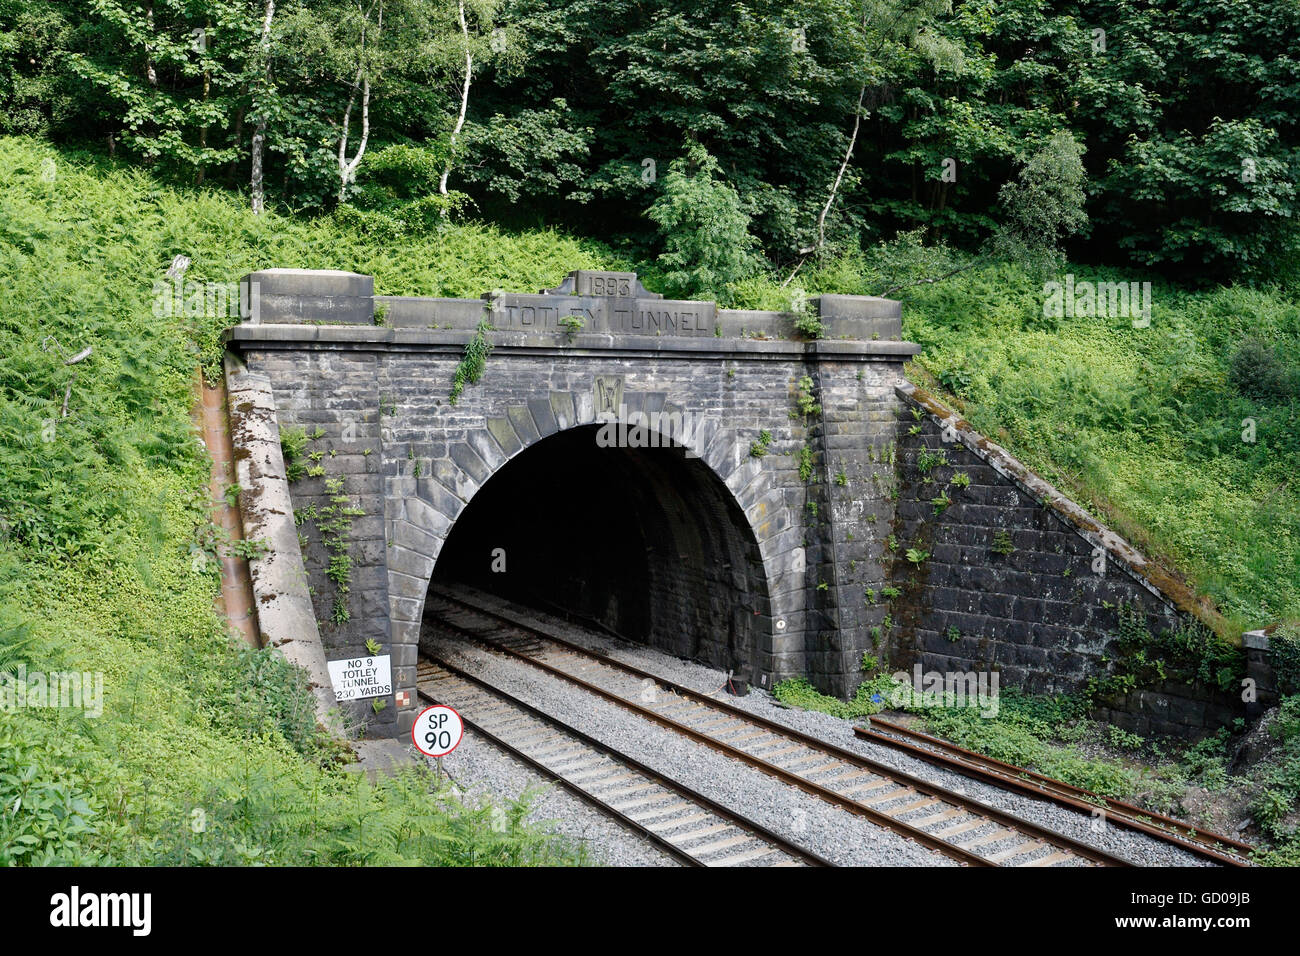 entrance to totley railway tunnel at grindleford in derbyshire stock photo royalty free image. Black Bedroom Furniture Sets. Home Design Ideas